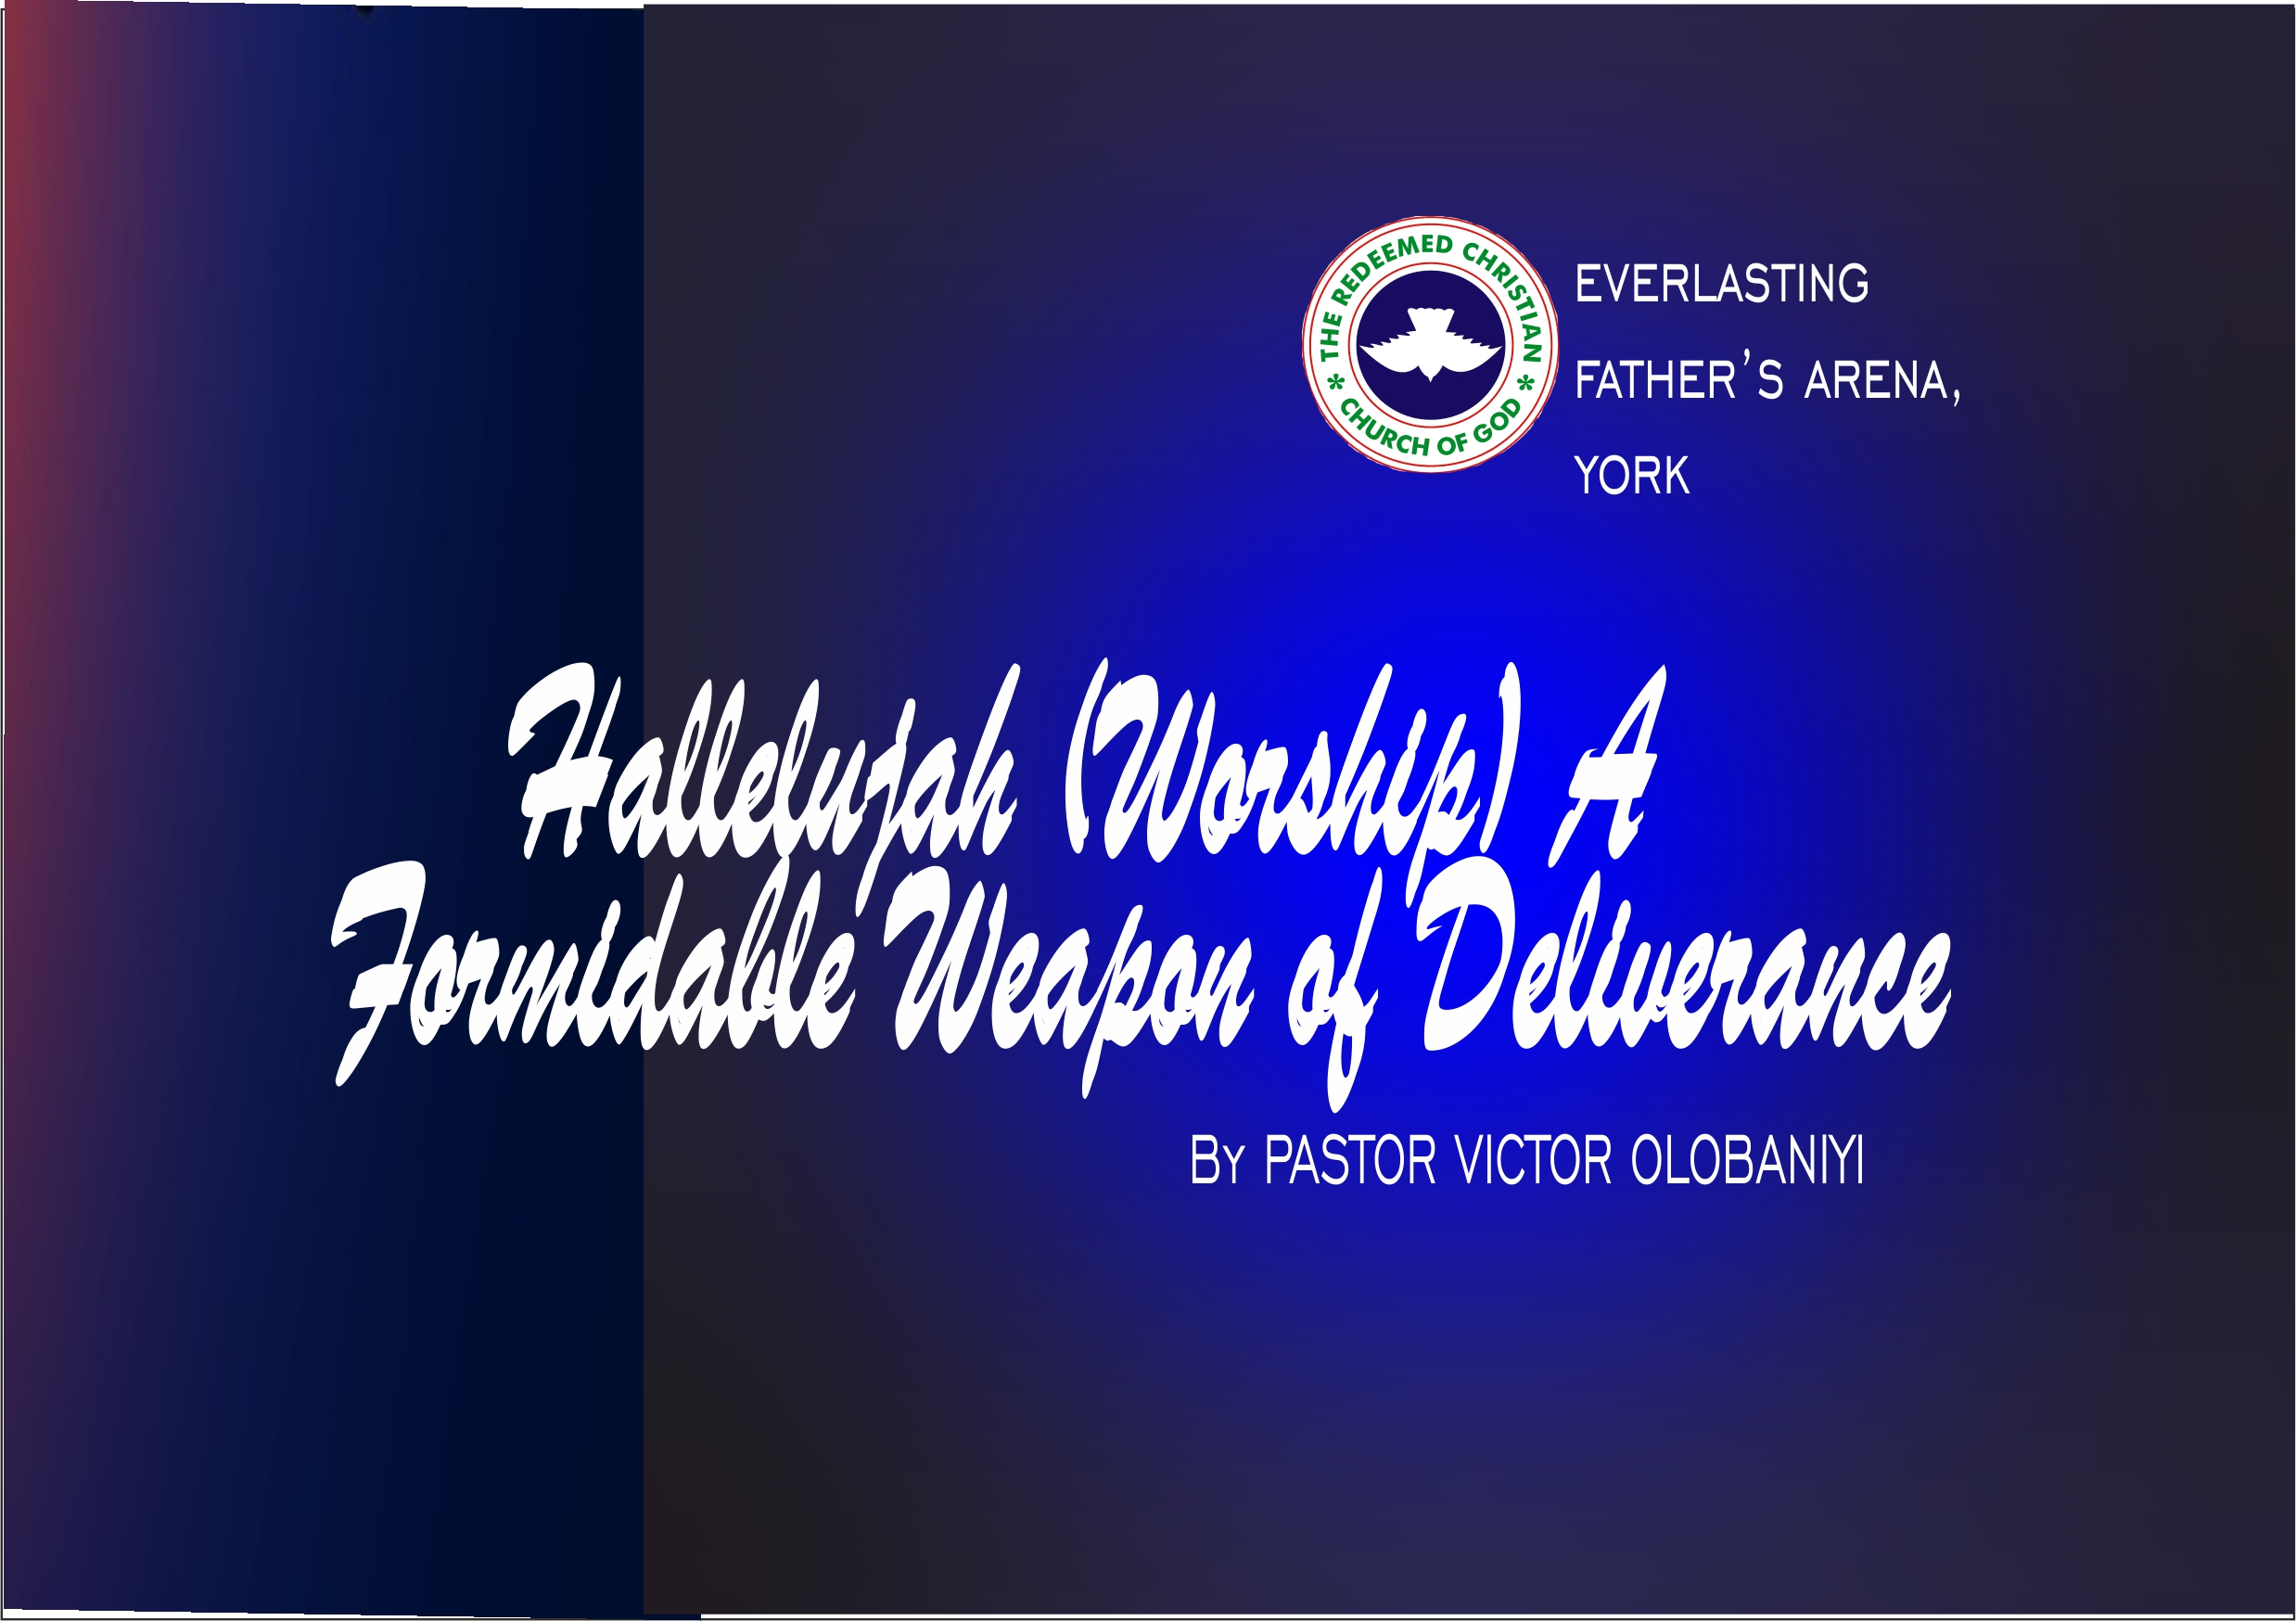 Hallelujah (Worship), A Formidable Weapon of Deliverance, by Pastor Victor Olobaniyi